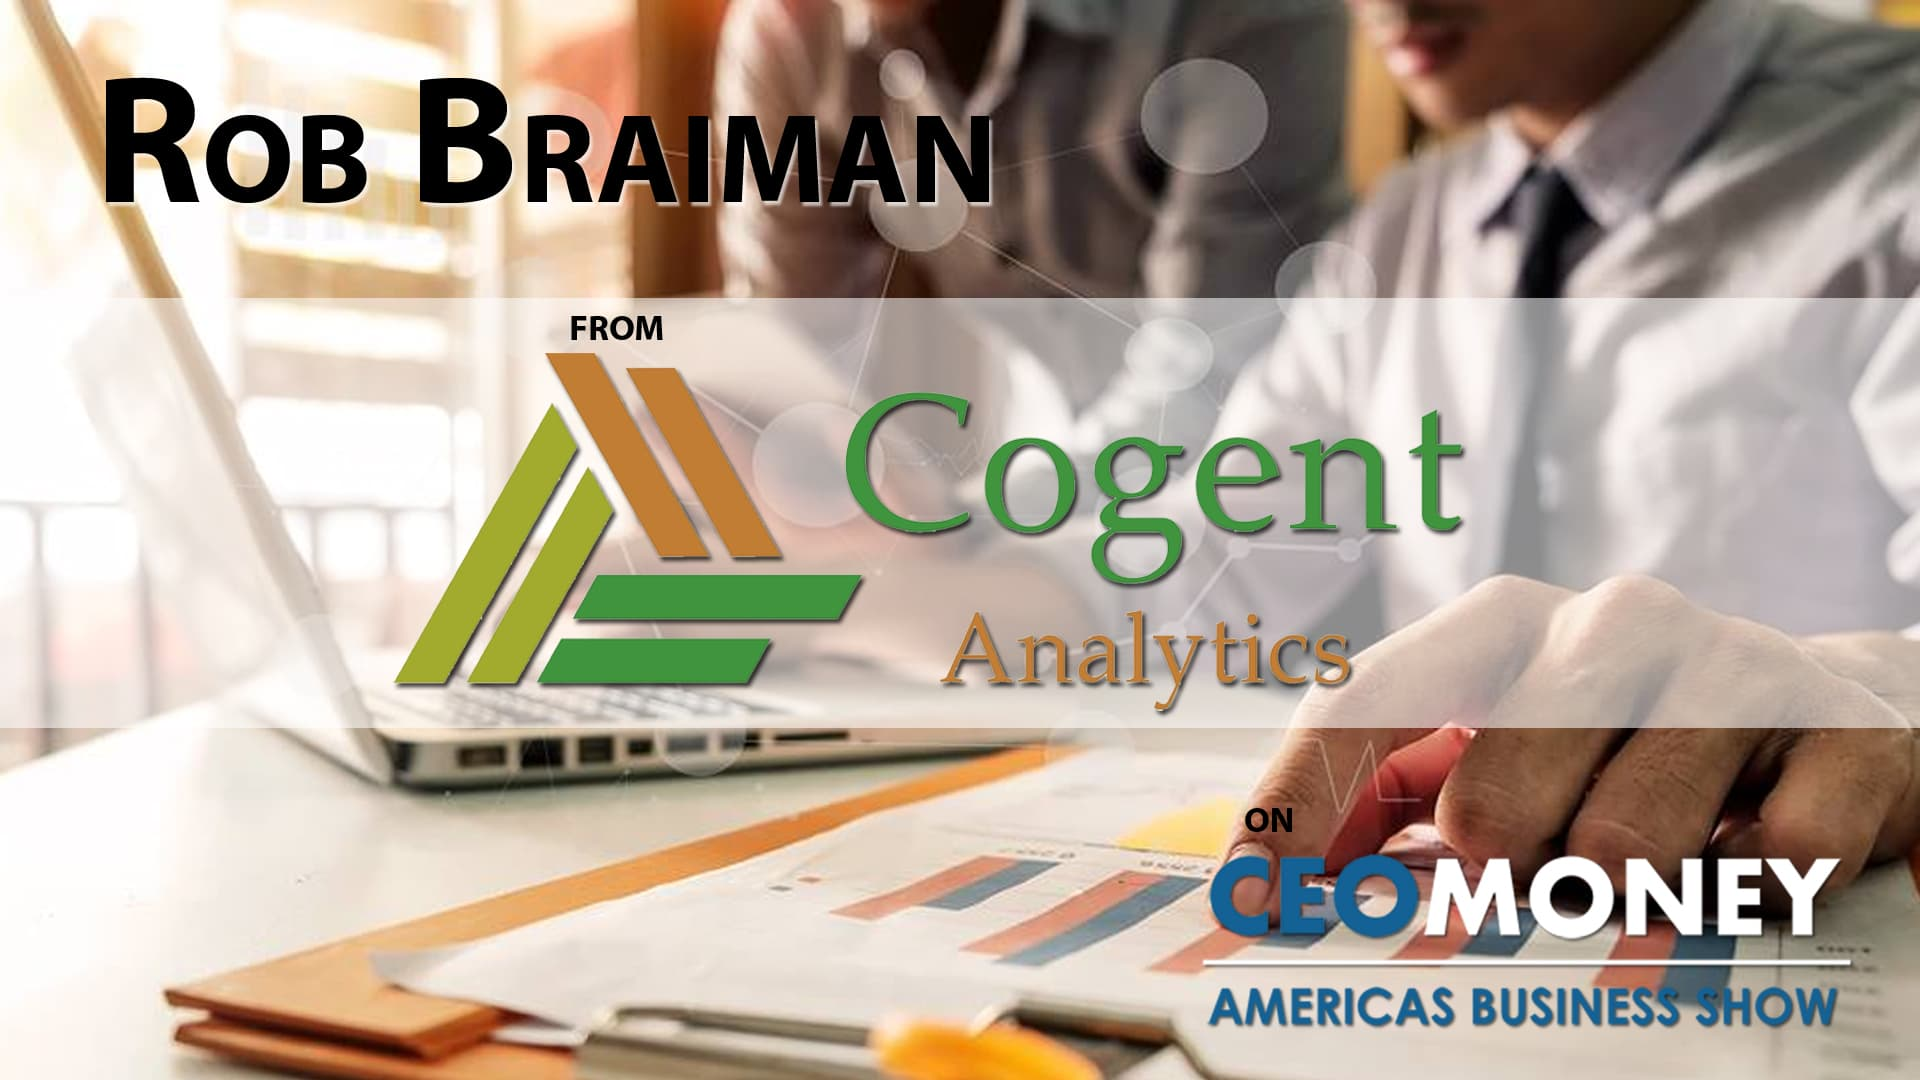 Rob Braiman on how Cogent Analytics helps entrepreneurs strengthen their businesses, overcome challenges, and engineer profit